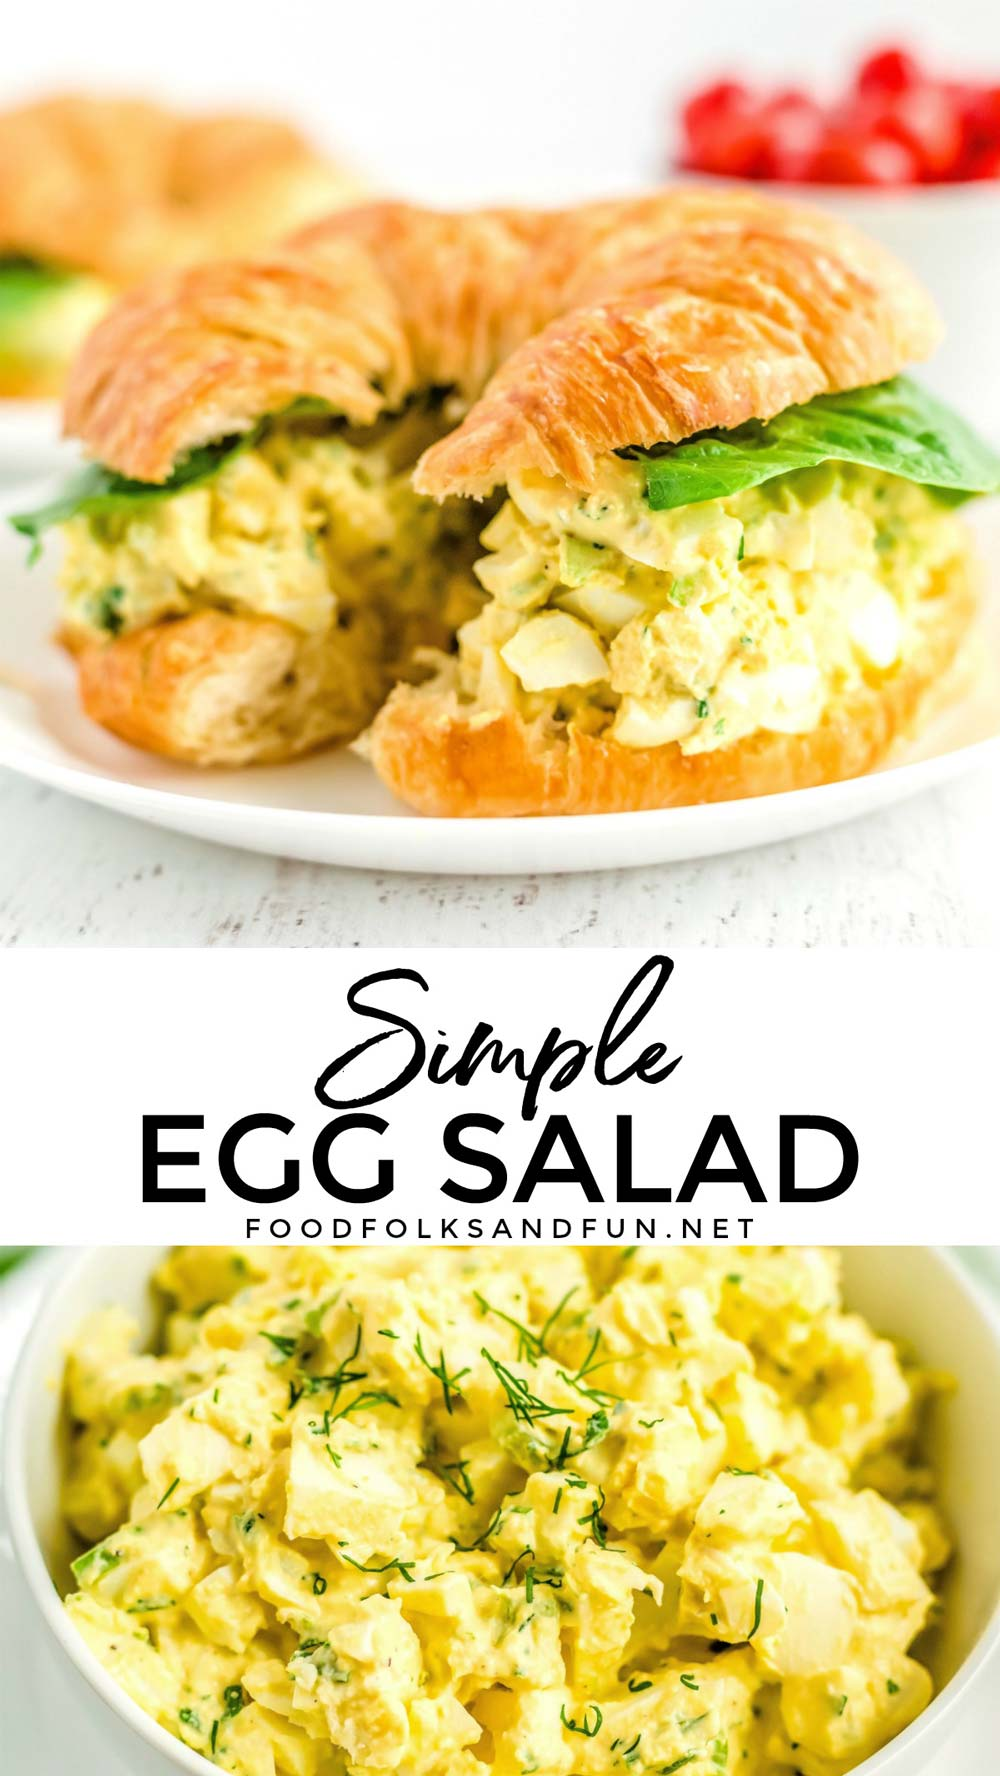 This creamy Egg Salad recipe has chunks of egg whites and just the right balance of crunchy celery and bright herbs like chives and dill.